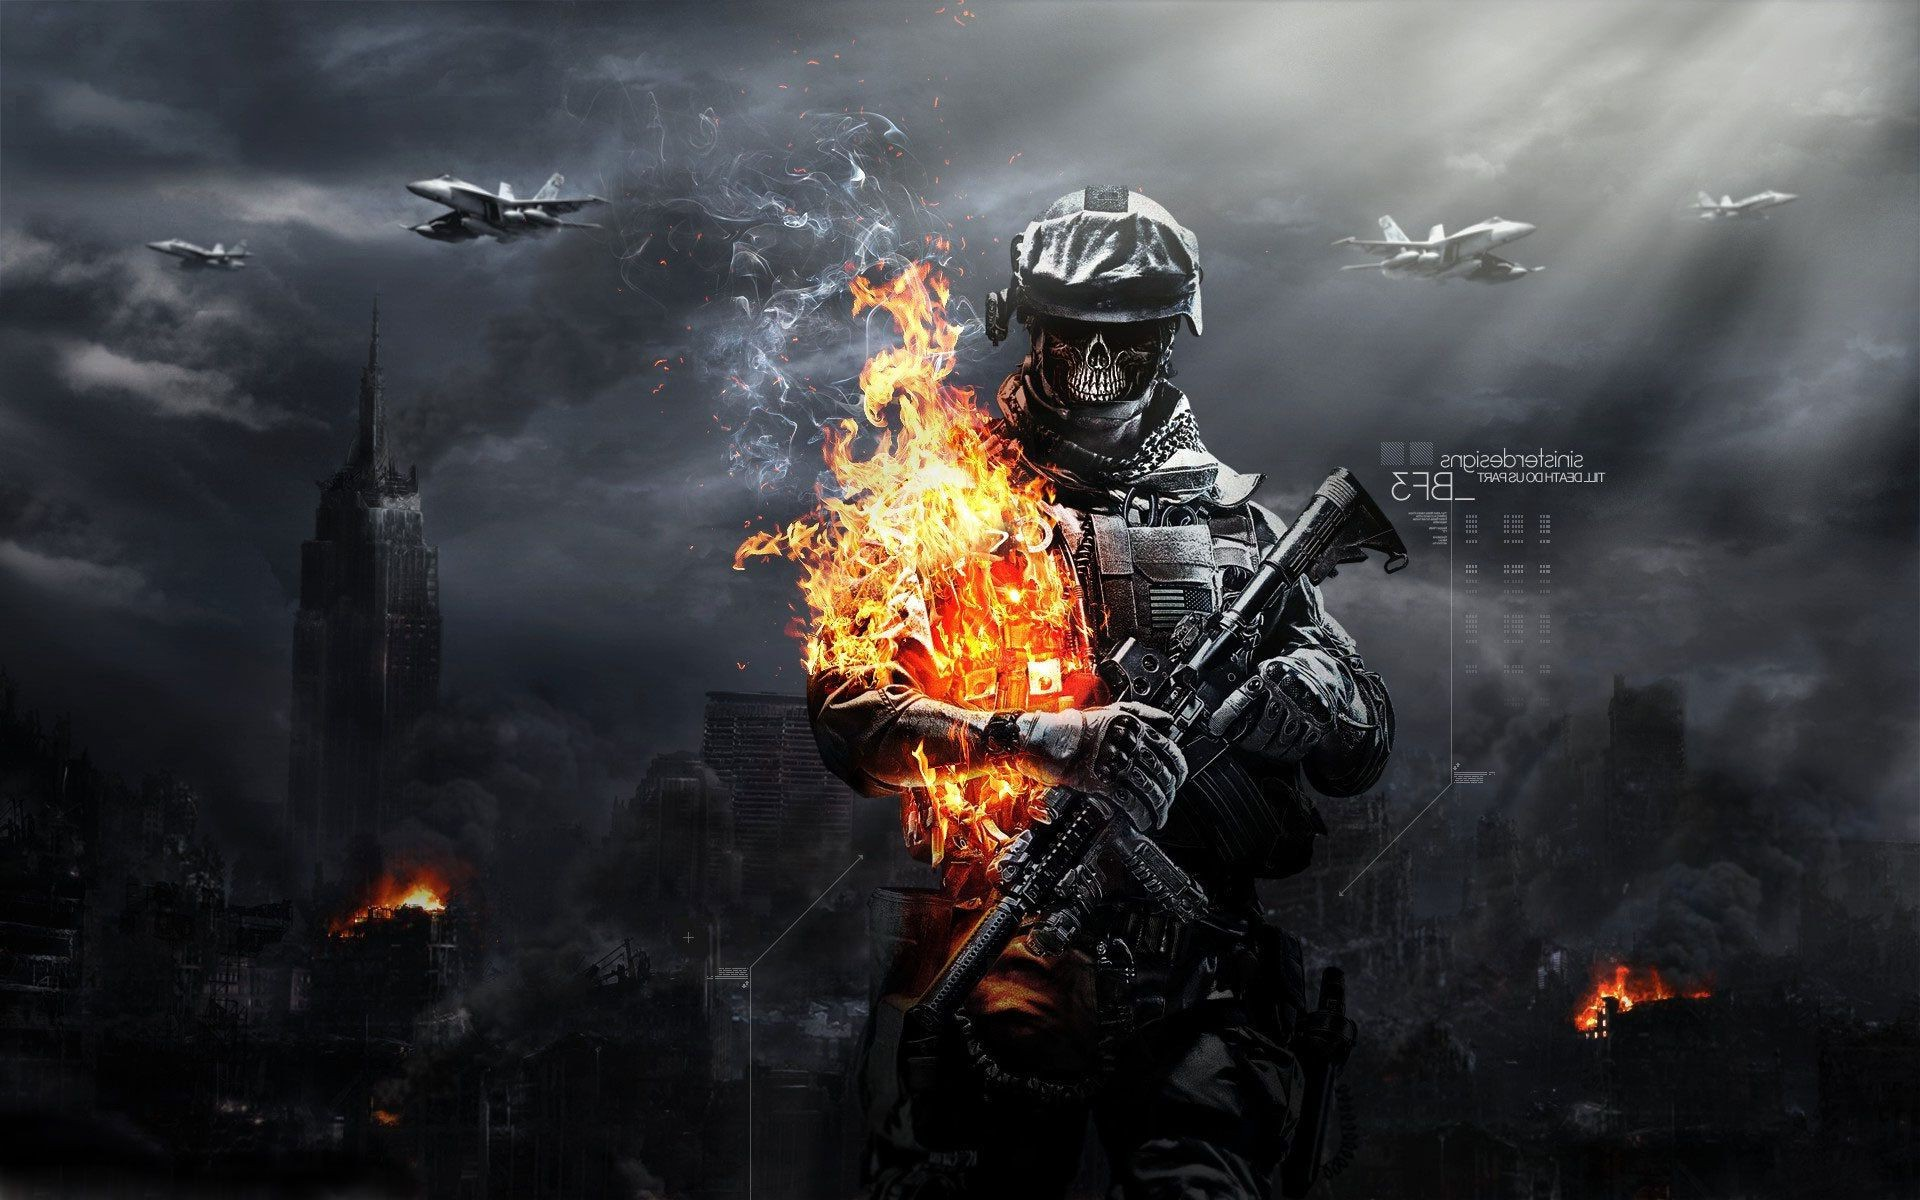 shooting flame smoke calamity danger rebellion battle heat ash arson burnt police burn hot explosion destruction war coal rally military